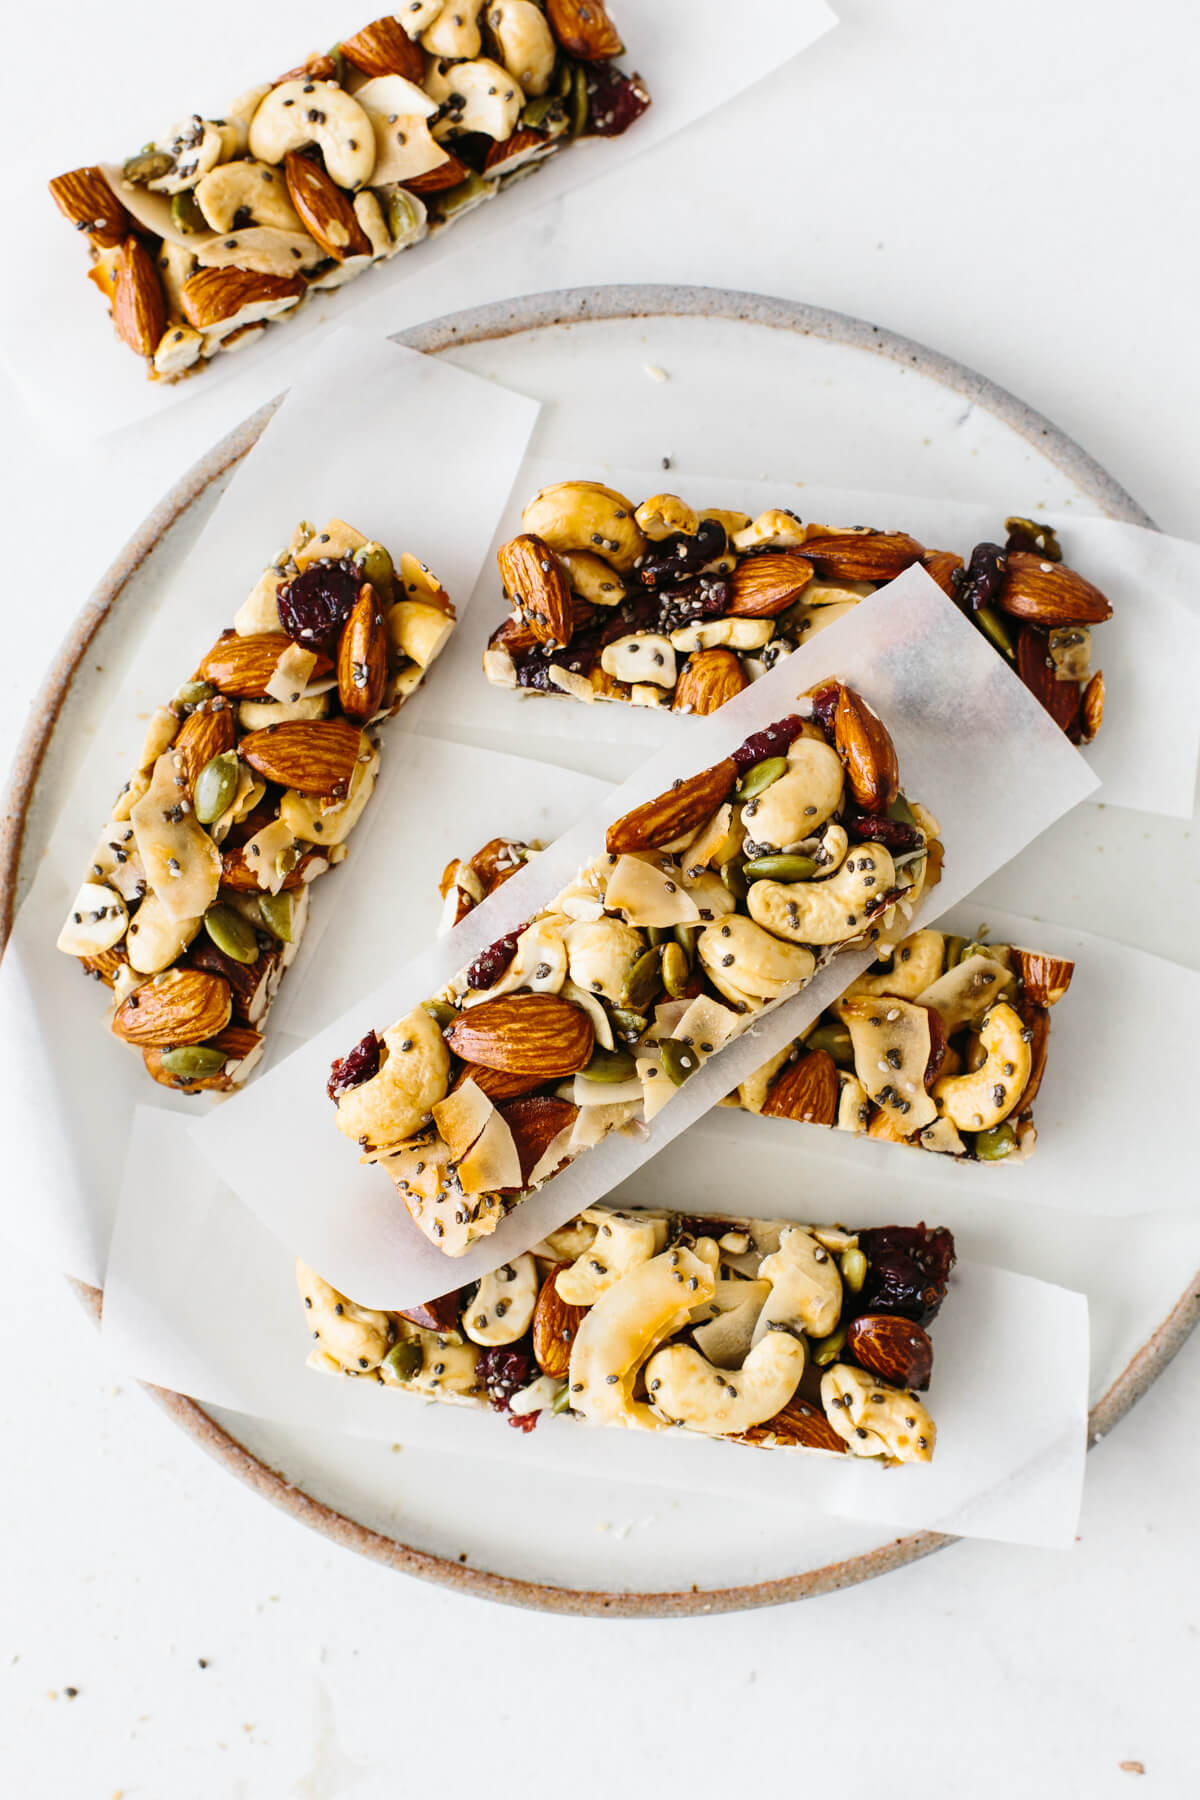 Several trail mix granola bars on a plate.